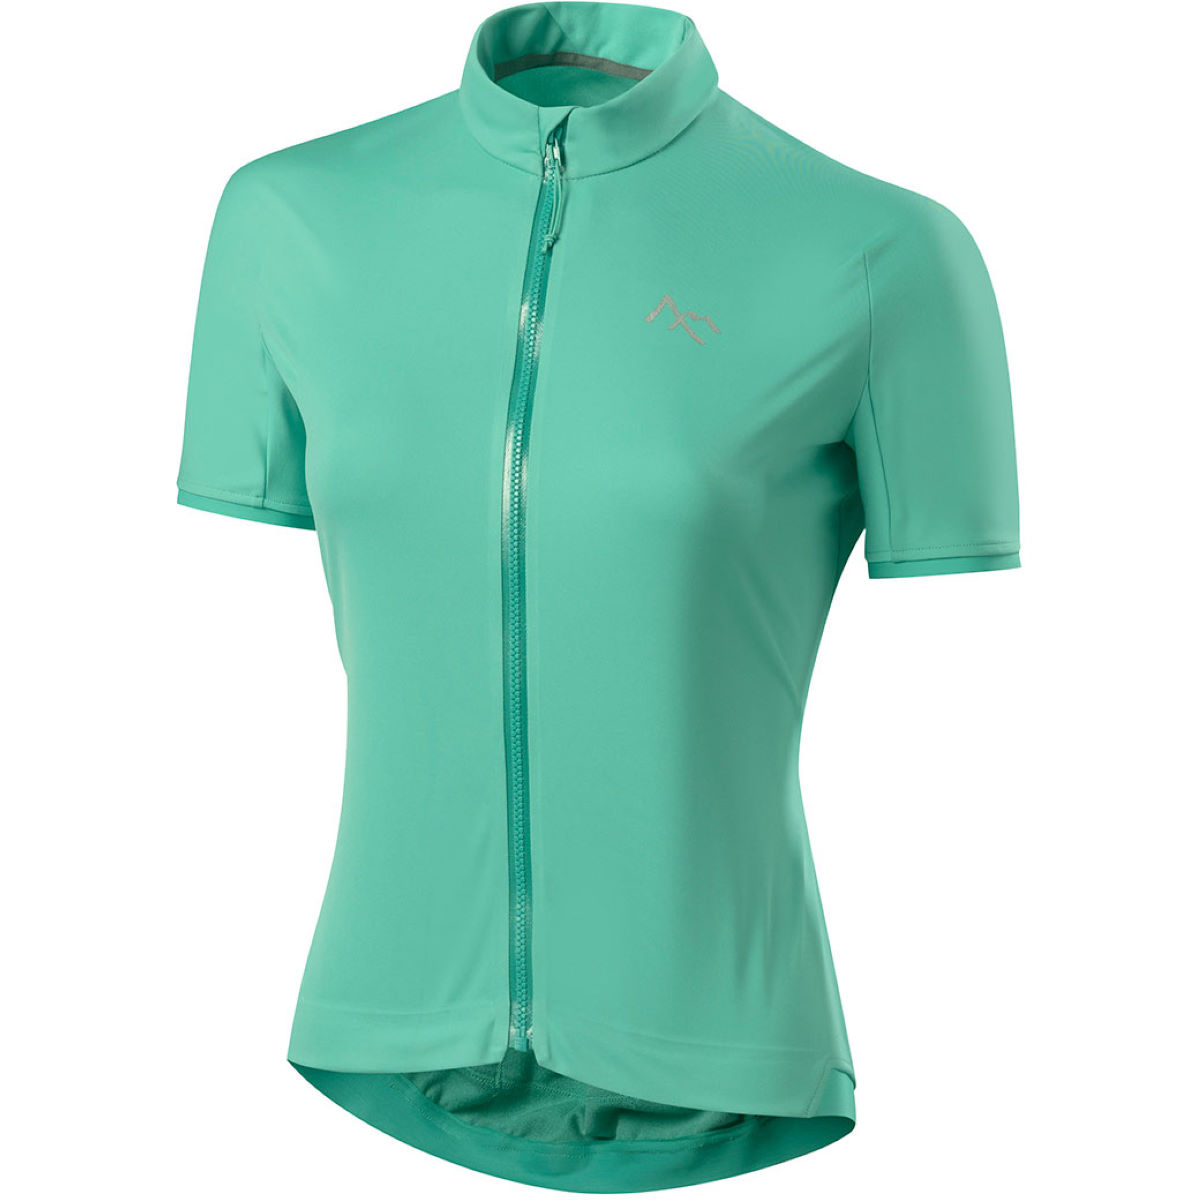 Maillot Femme 7Mesh Synergy (manches courtes) - XS Emerald Maillots